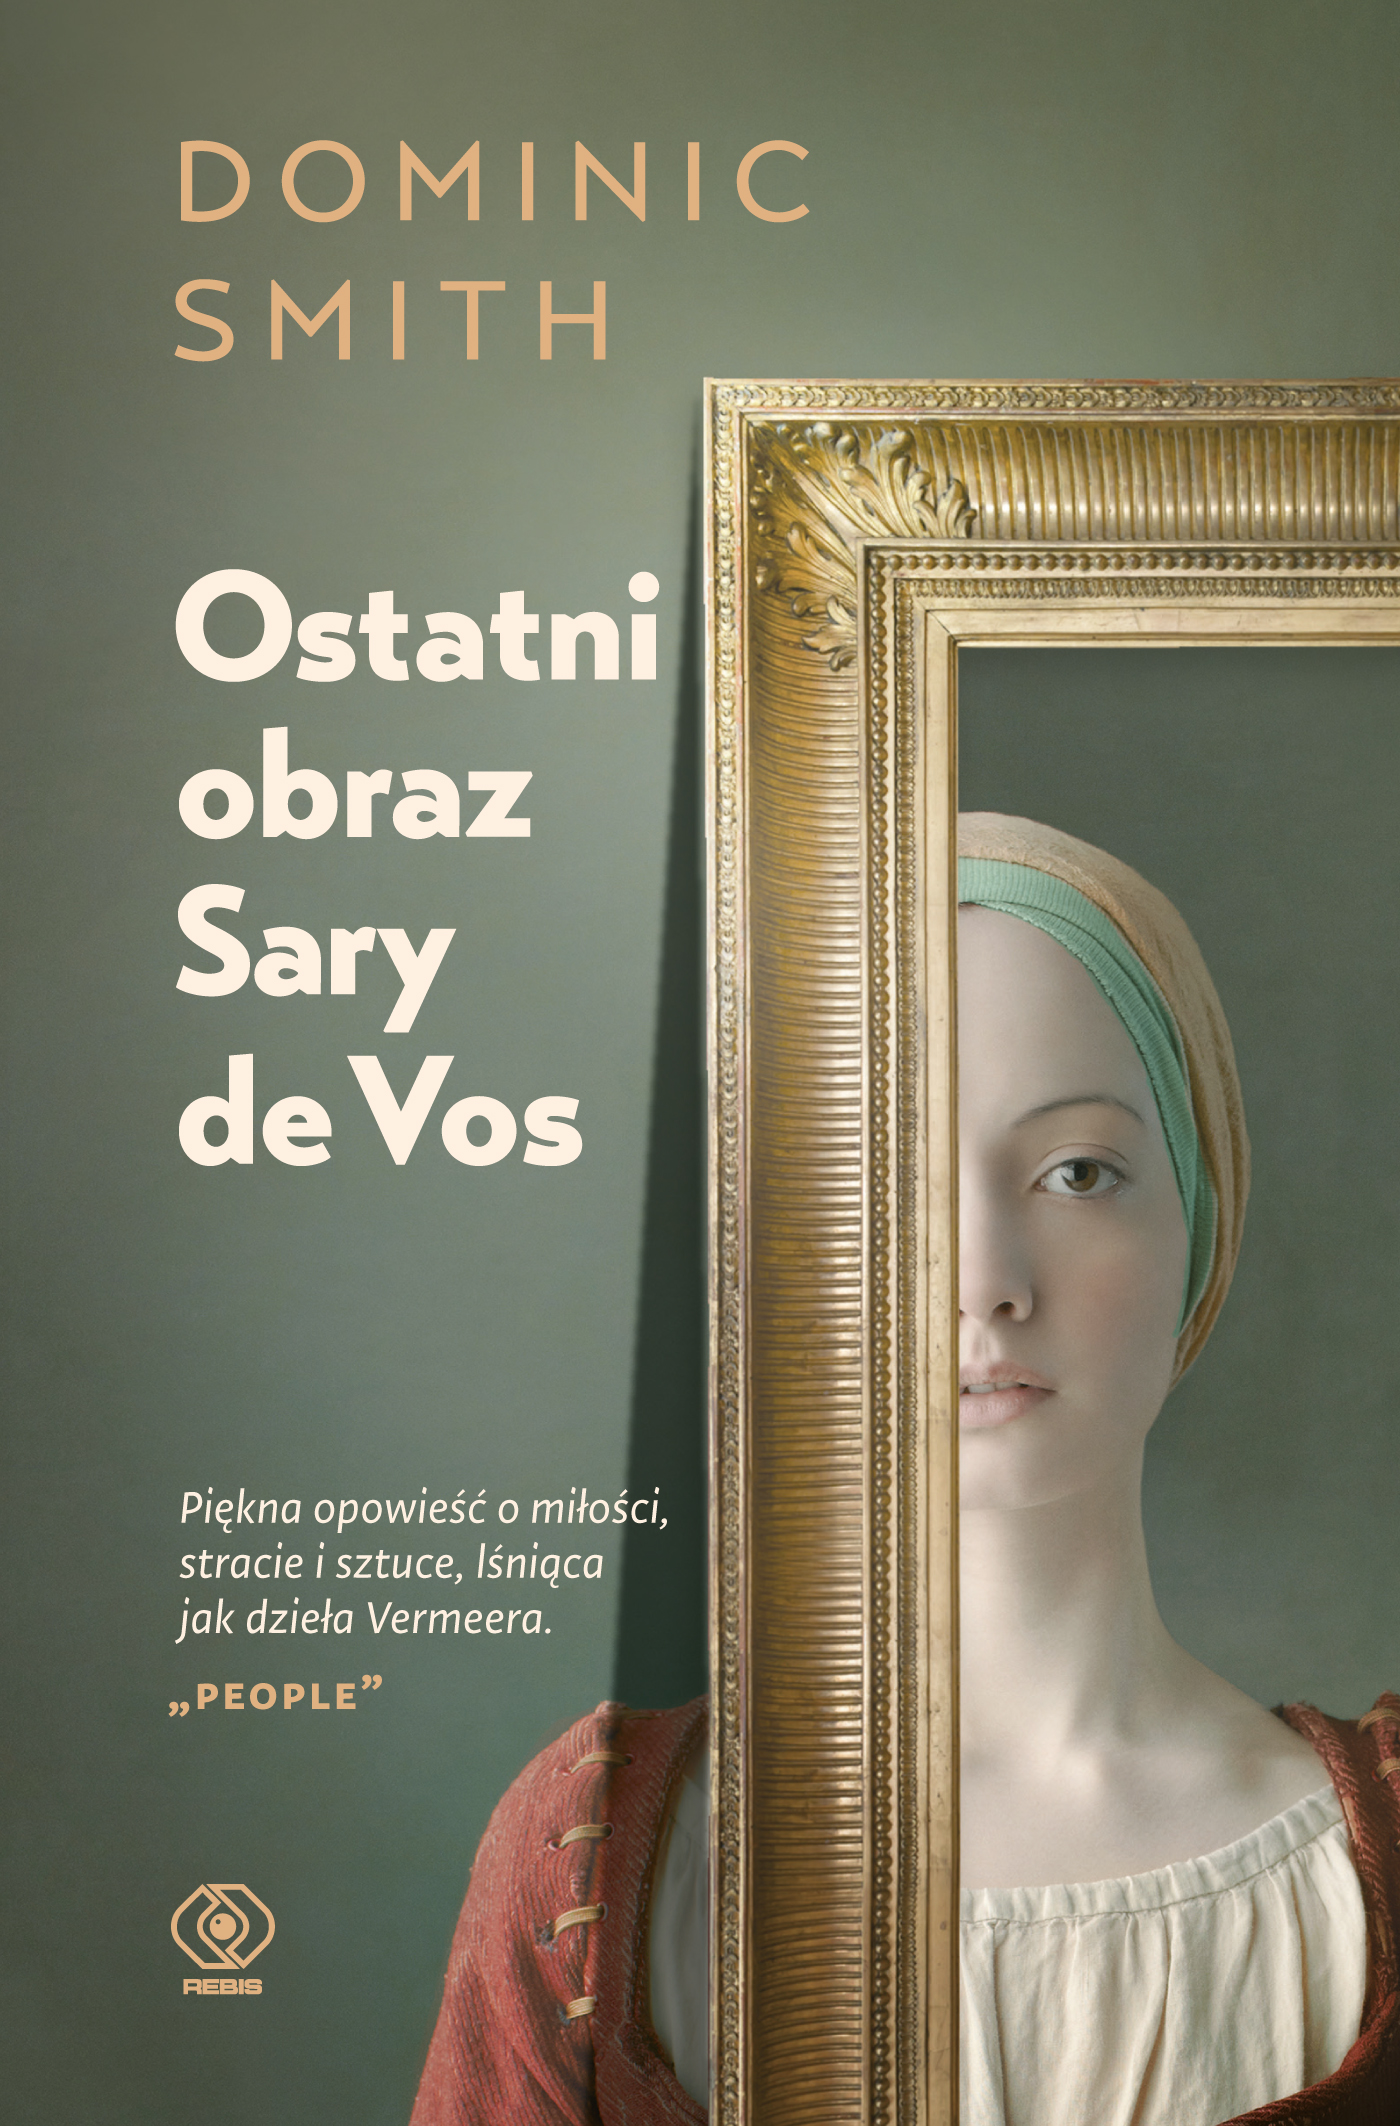 """Ostatni obraz Sary de Vos"", Dominic Smith,"